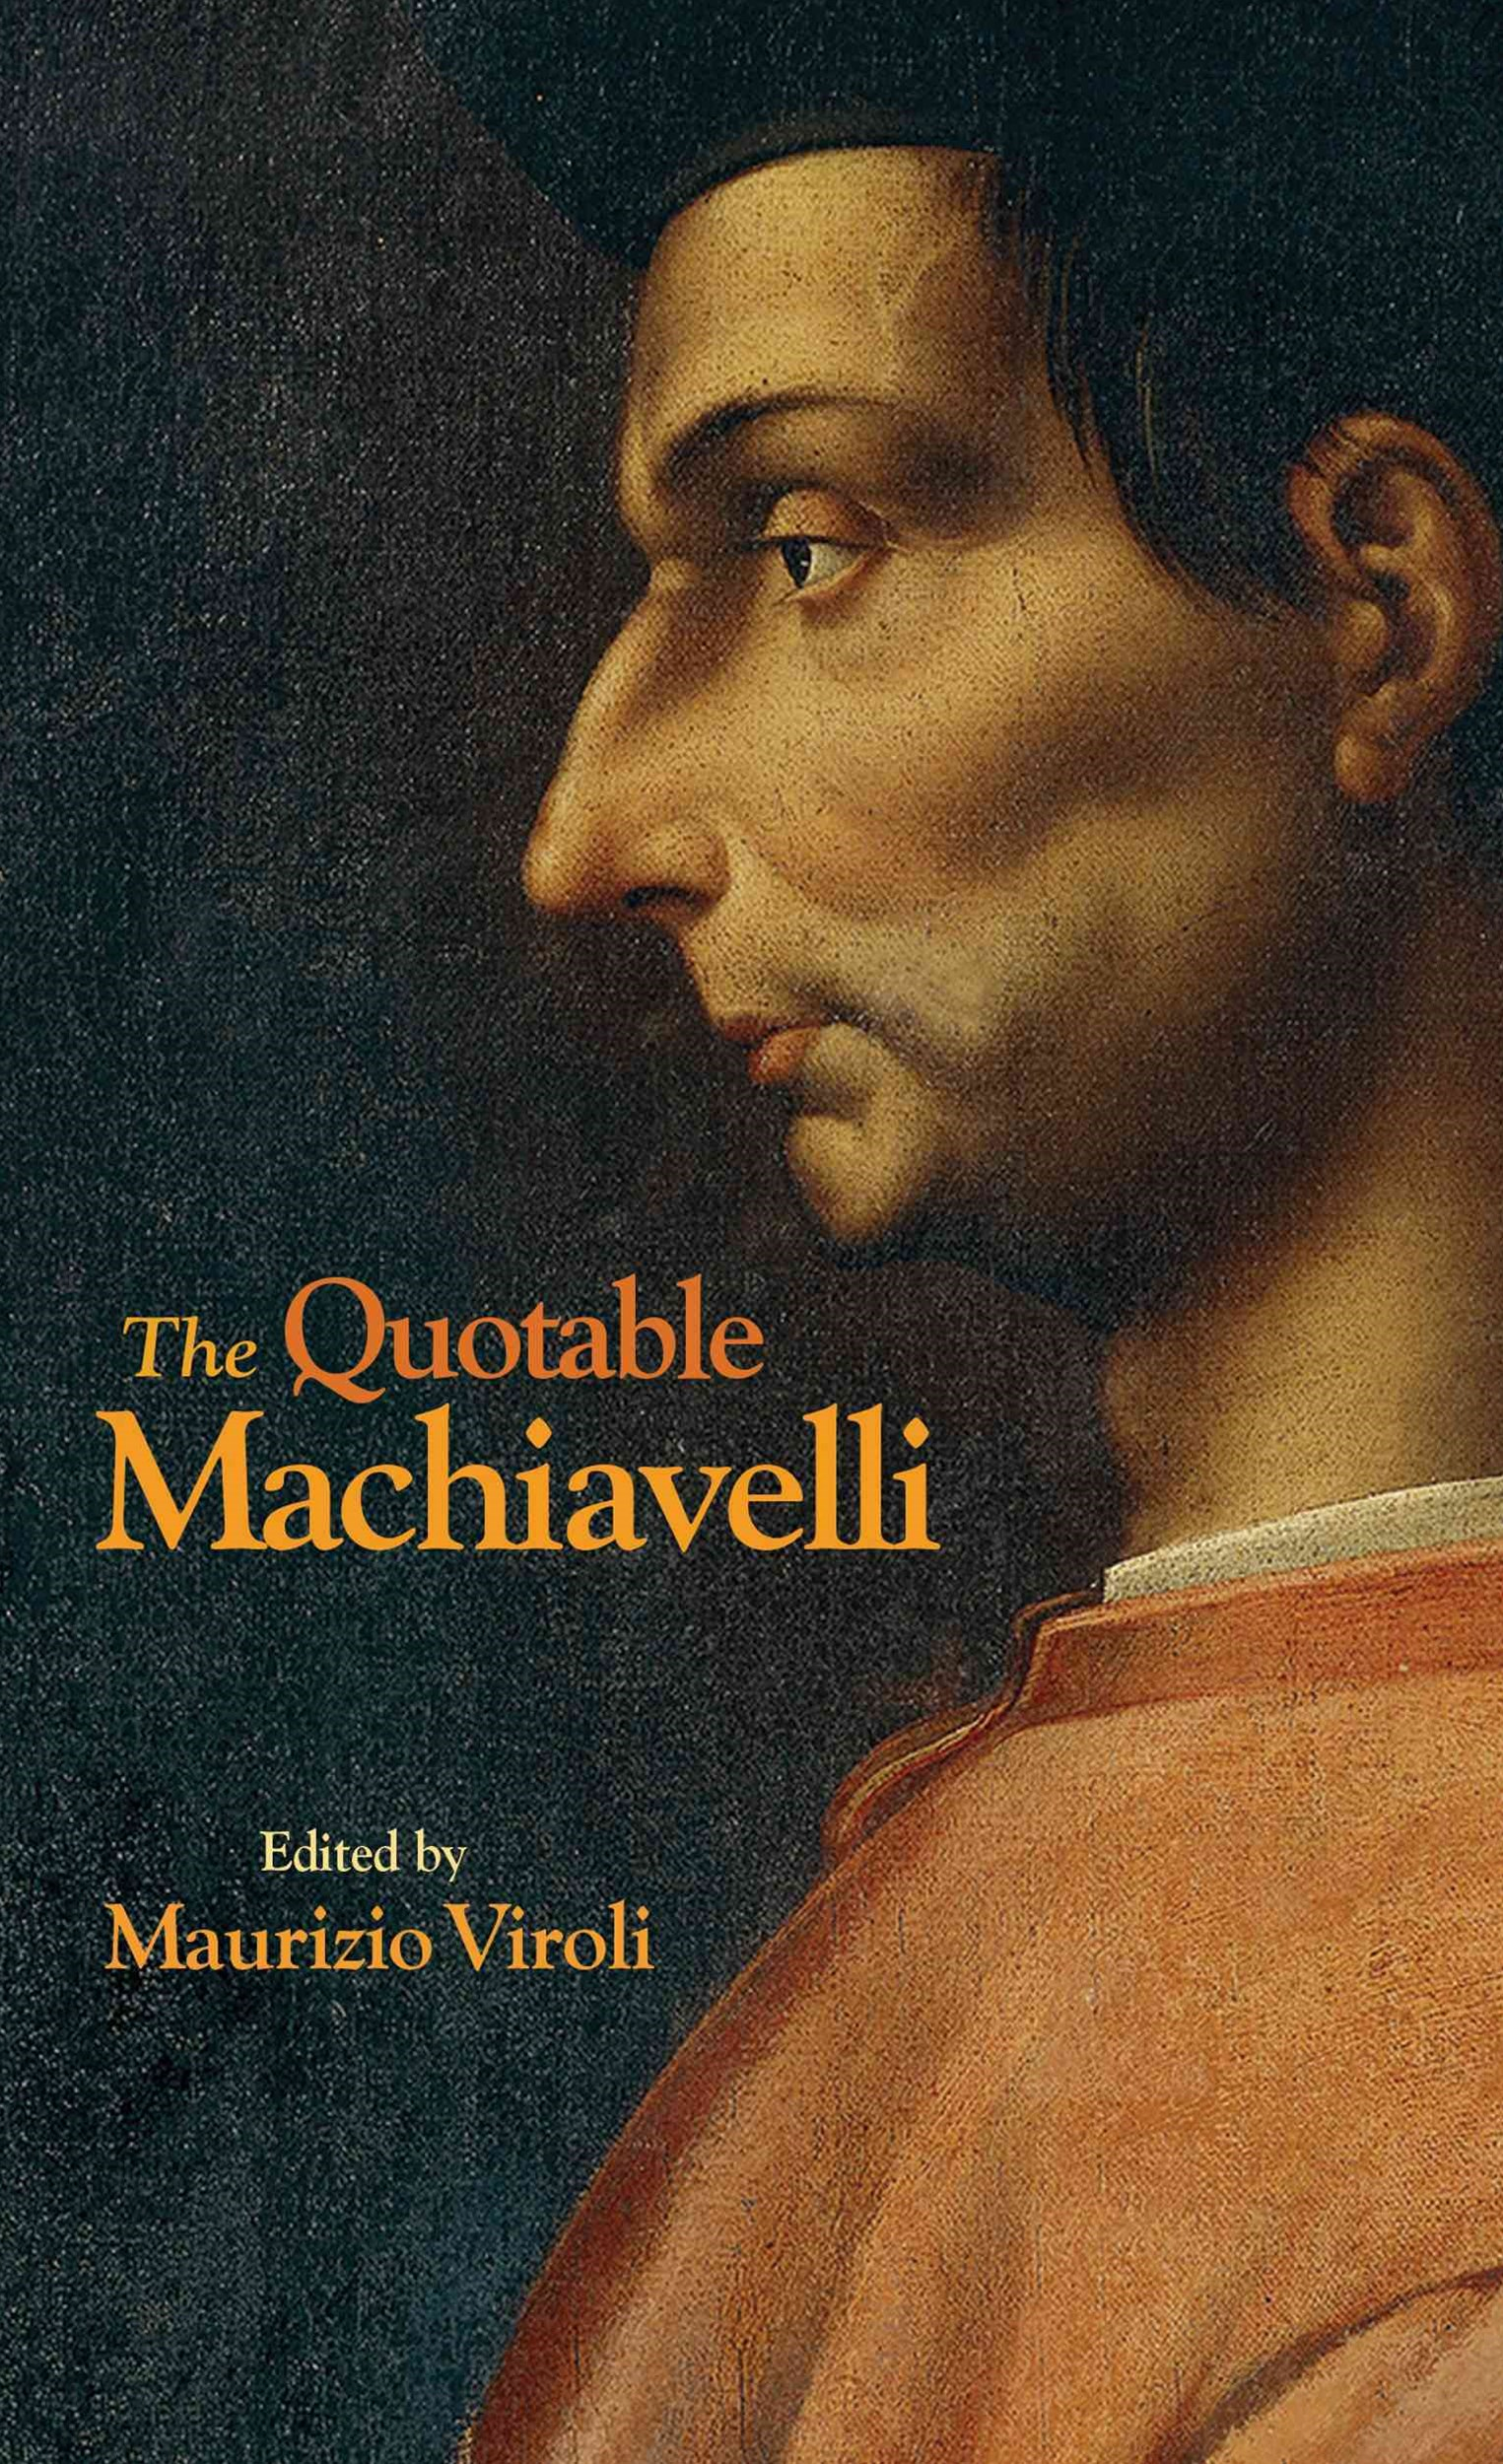 Quotable Machiavelli